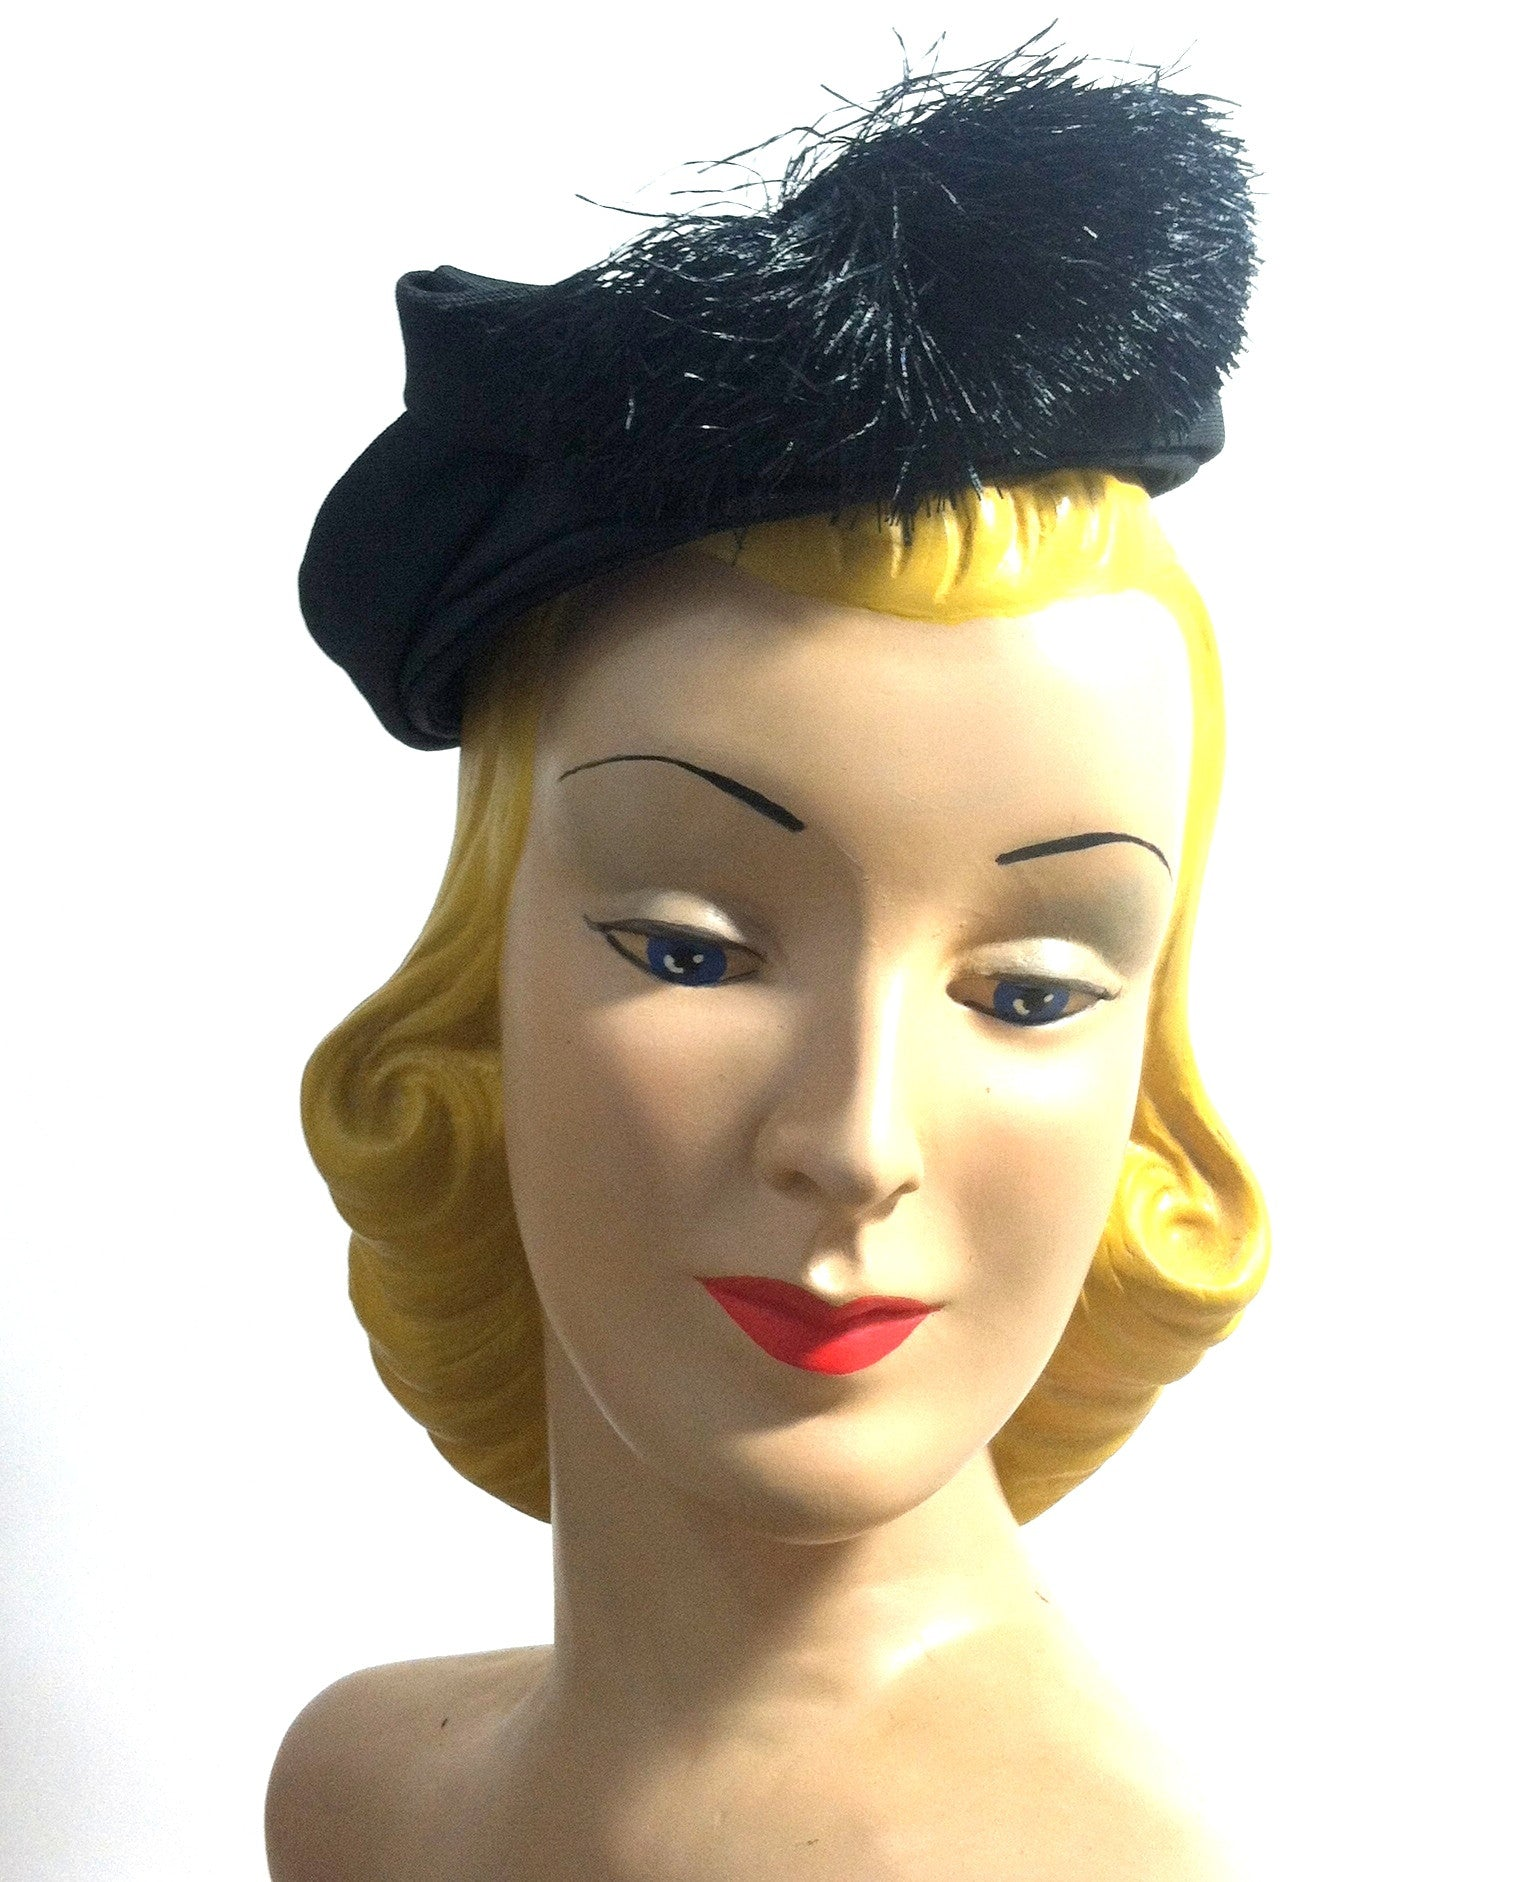 Black Whirled Mini Pillbox Hat with Fringed Accent circa 1960s Nina Neal Dorothea's Closet Vintage Hat